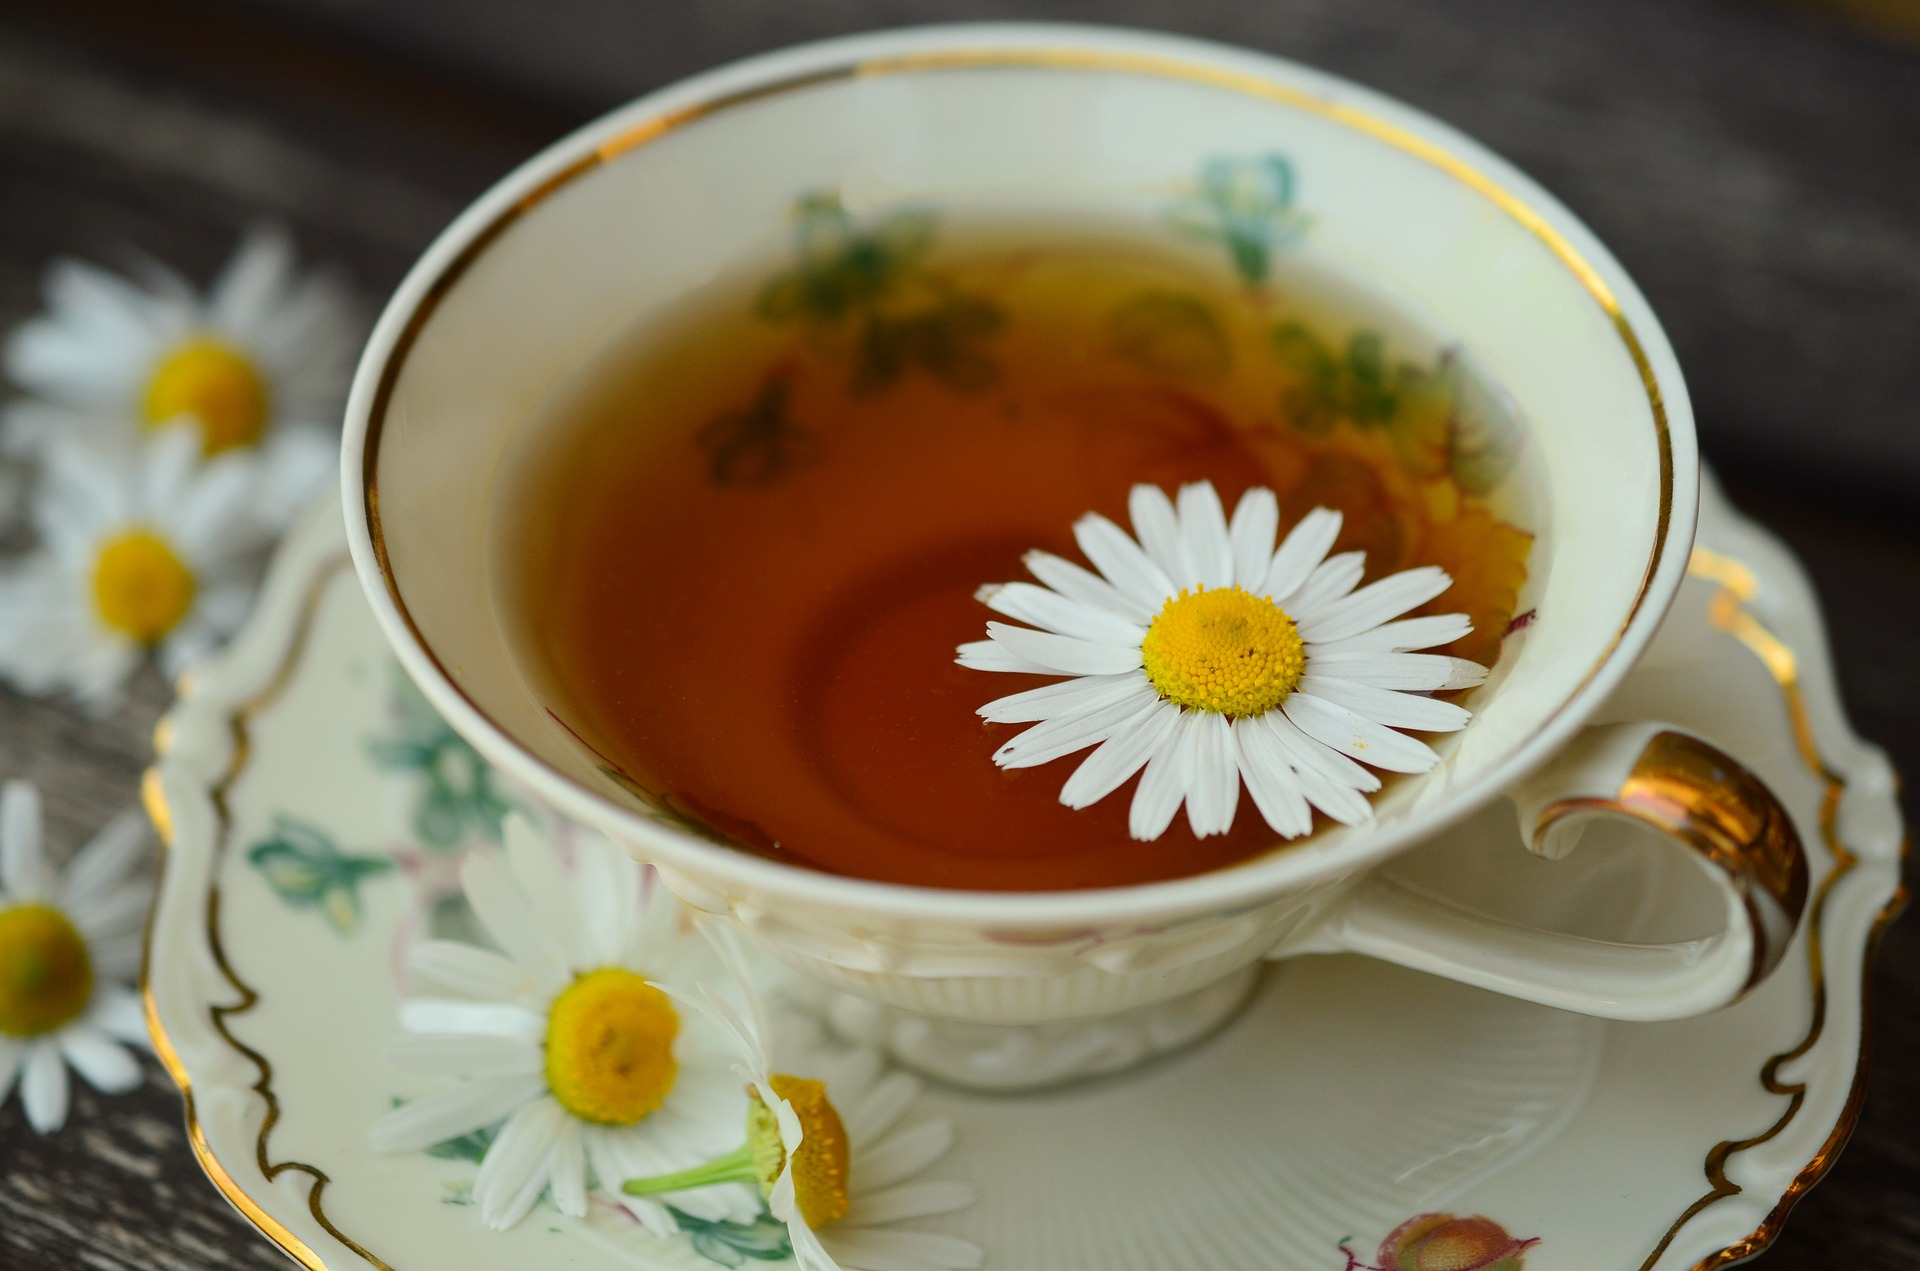 A cup of chamomile tea might help.